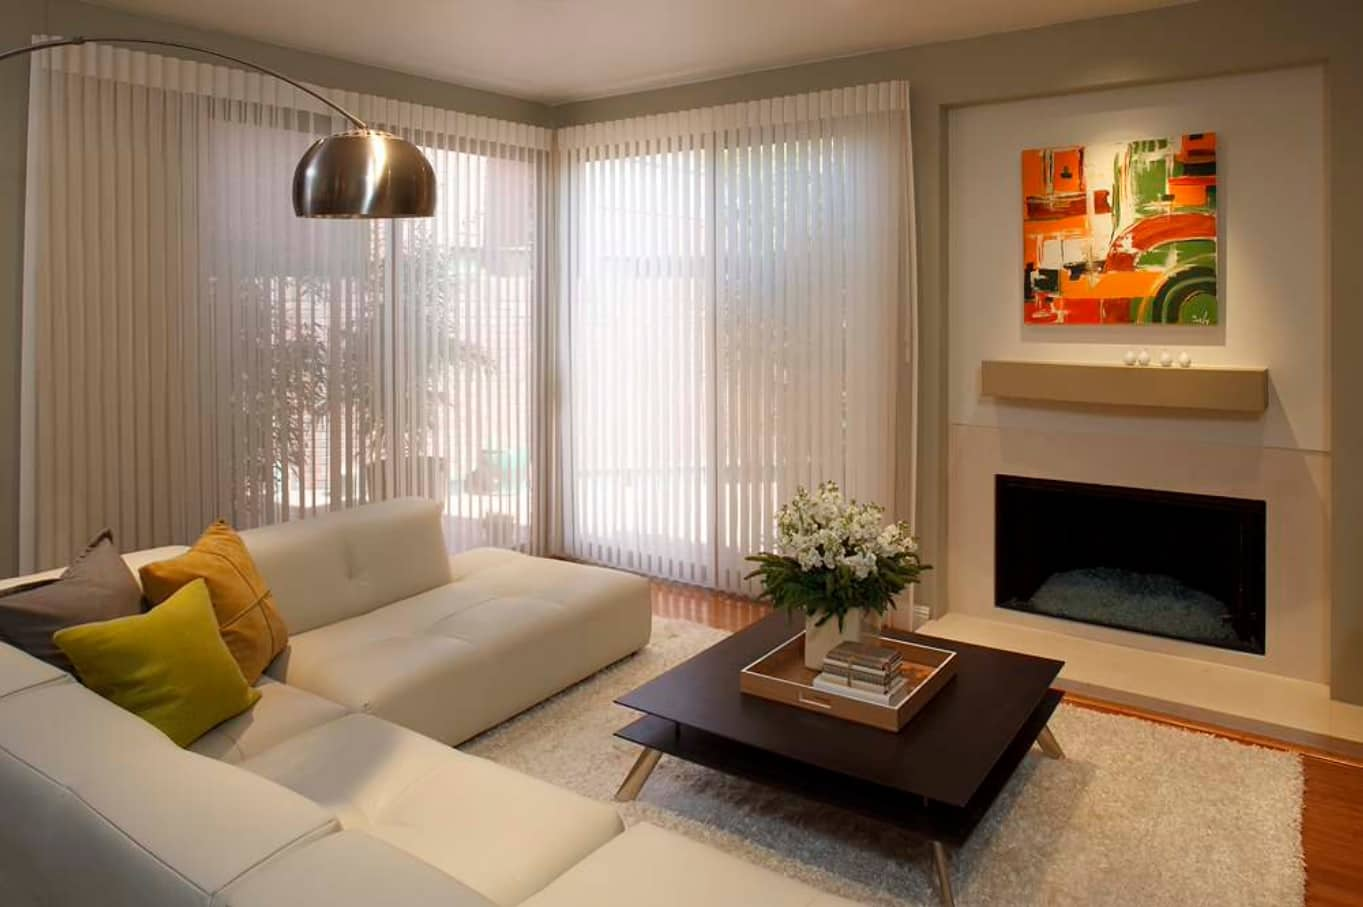 Using Vertical Blinds to Complement Interior Decor. Modern styled living room with angular panoramic window